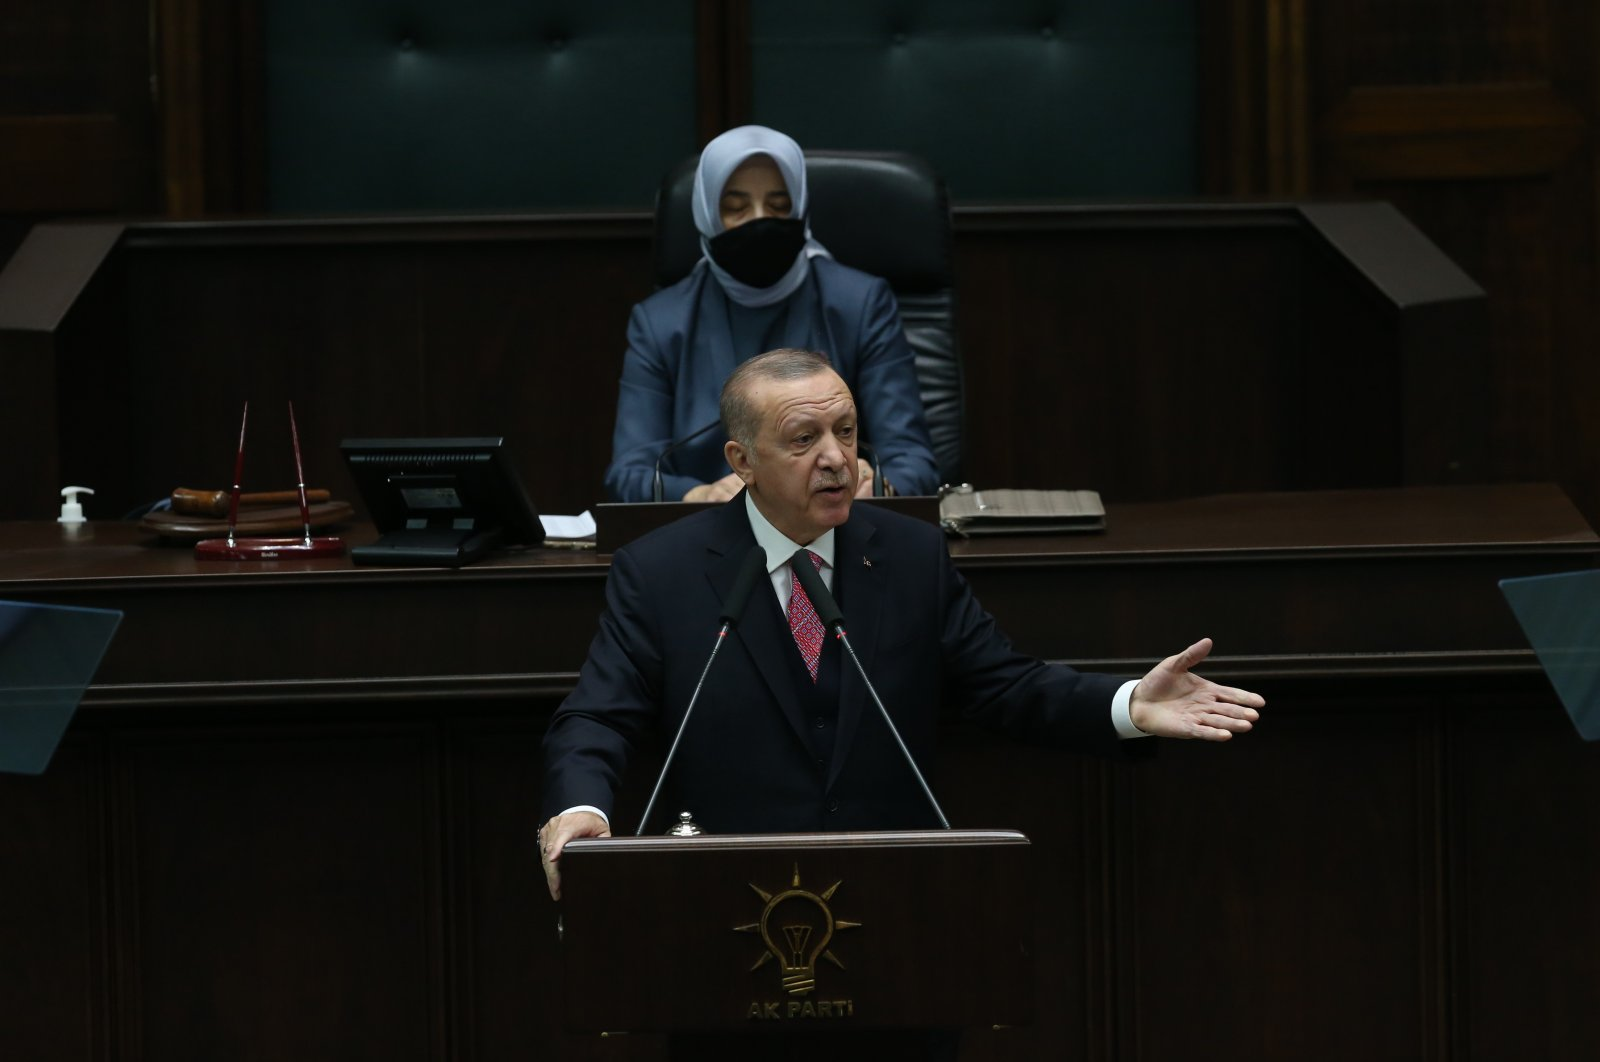 President Recep Tayyip Erdoğan addresses party members in the ruling Justice and Development Party's (AK Party) parliamentary group meeting in the capital Ankara, Turkey, Nov. 25, 2020. (IHA Photo)